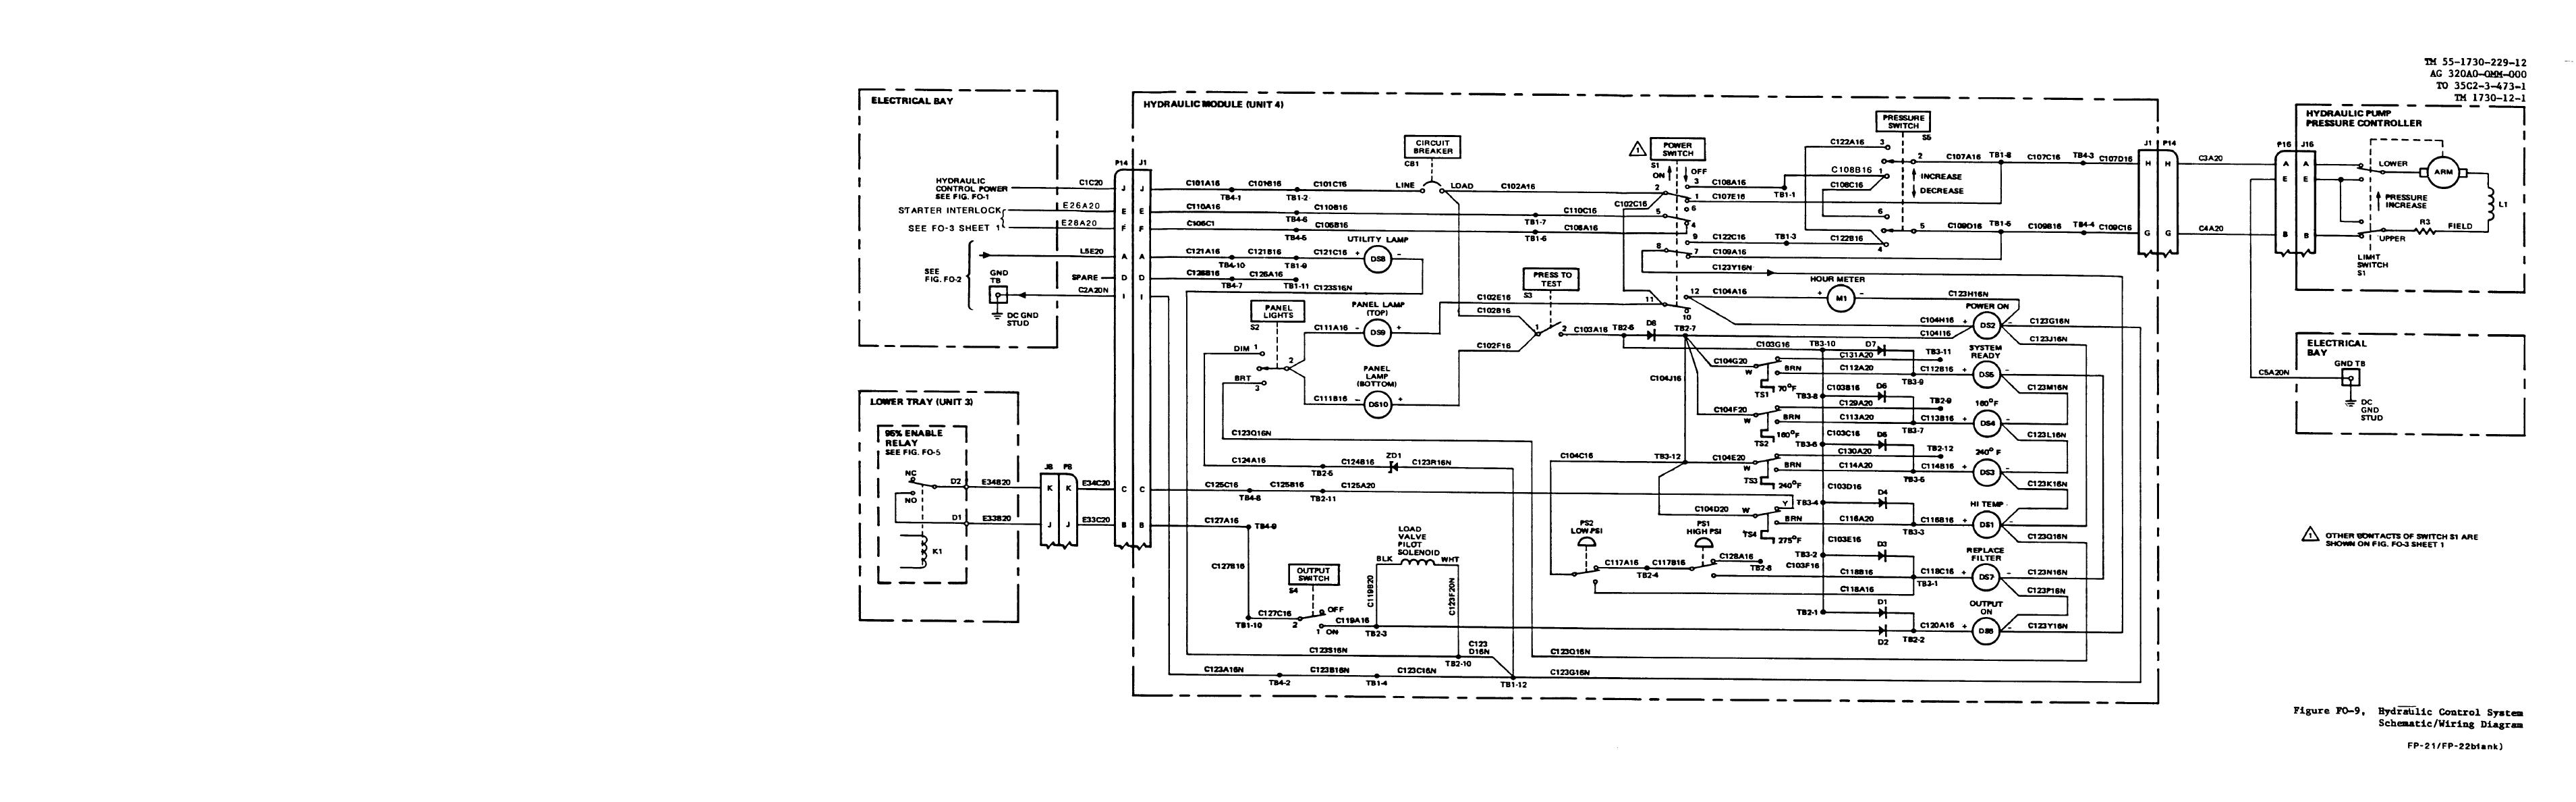 figure fo 9 hydraulic system schematic wiring diagram